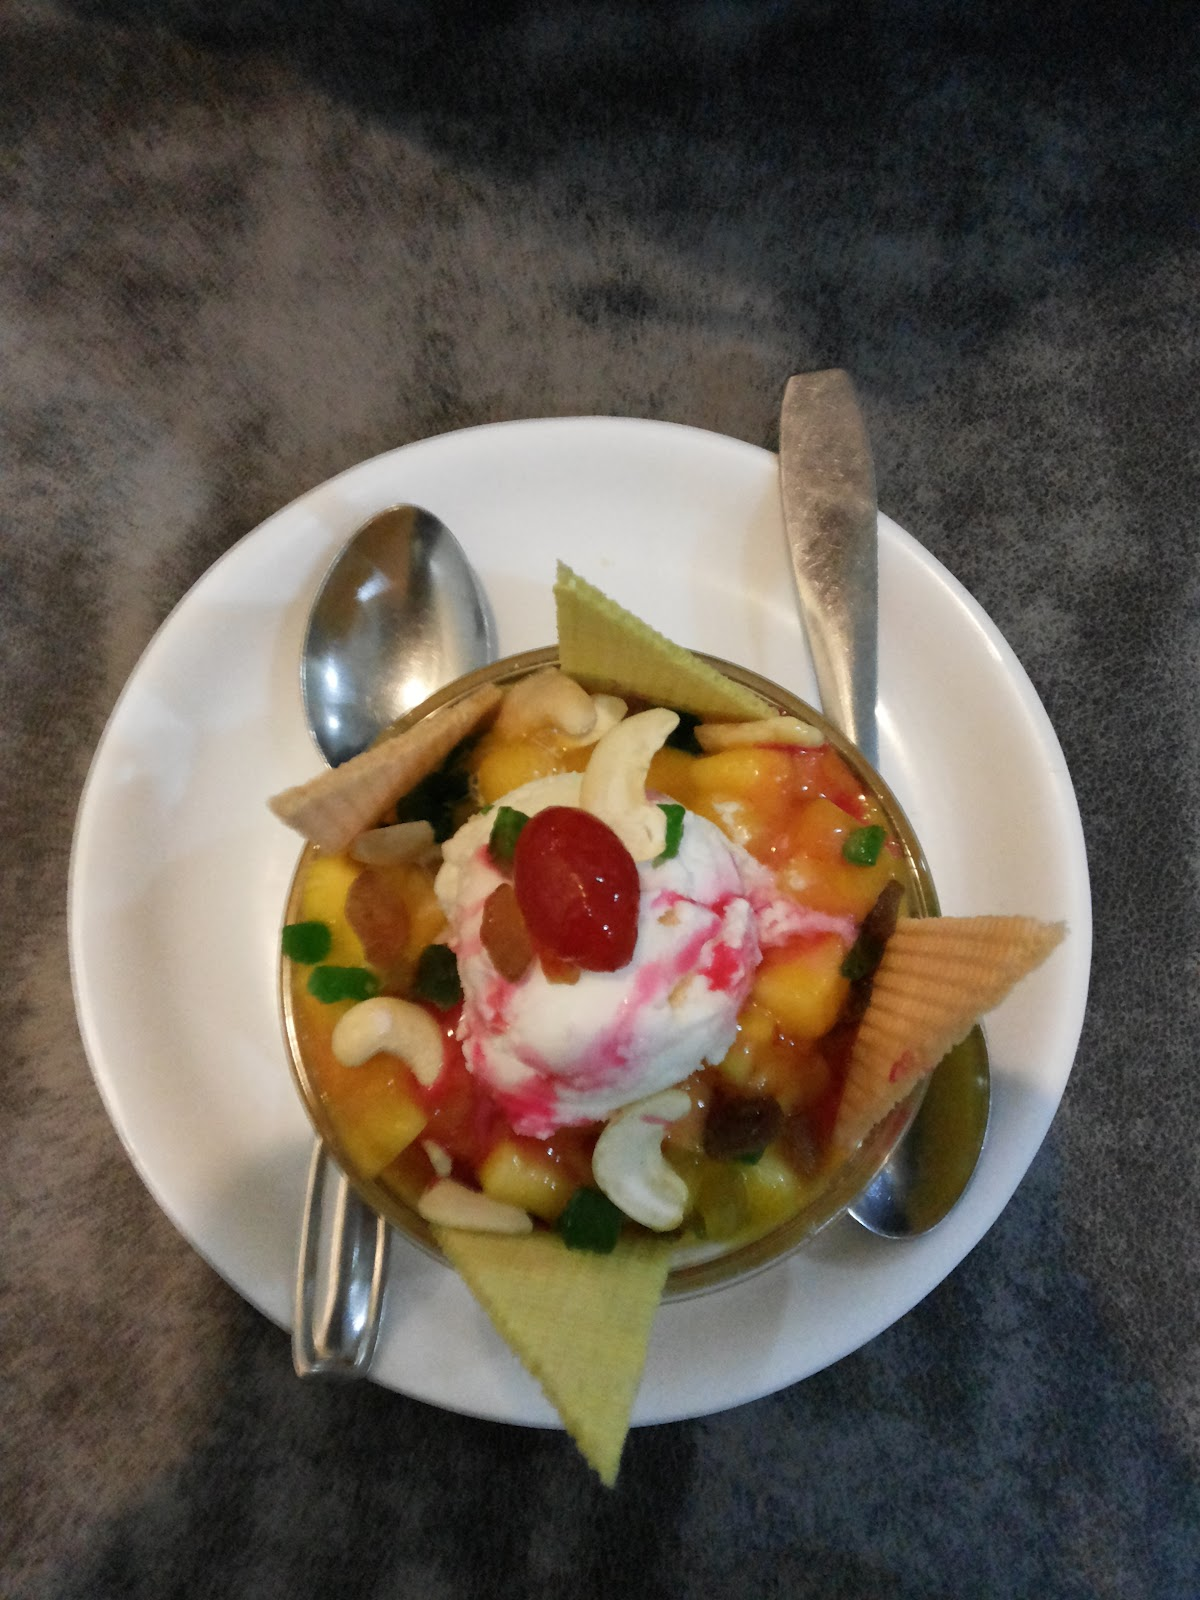 Fruit Salad with Ice-Cream at Shree Krishna Palace, best lunch places near Pune Railway Station